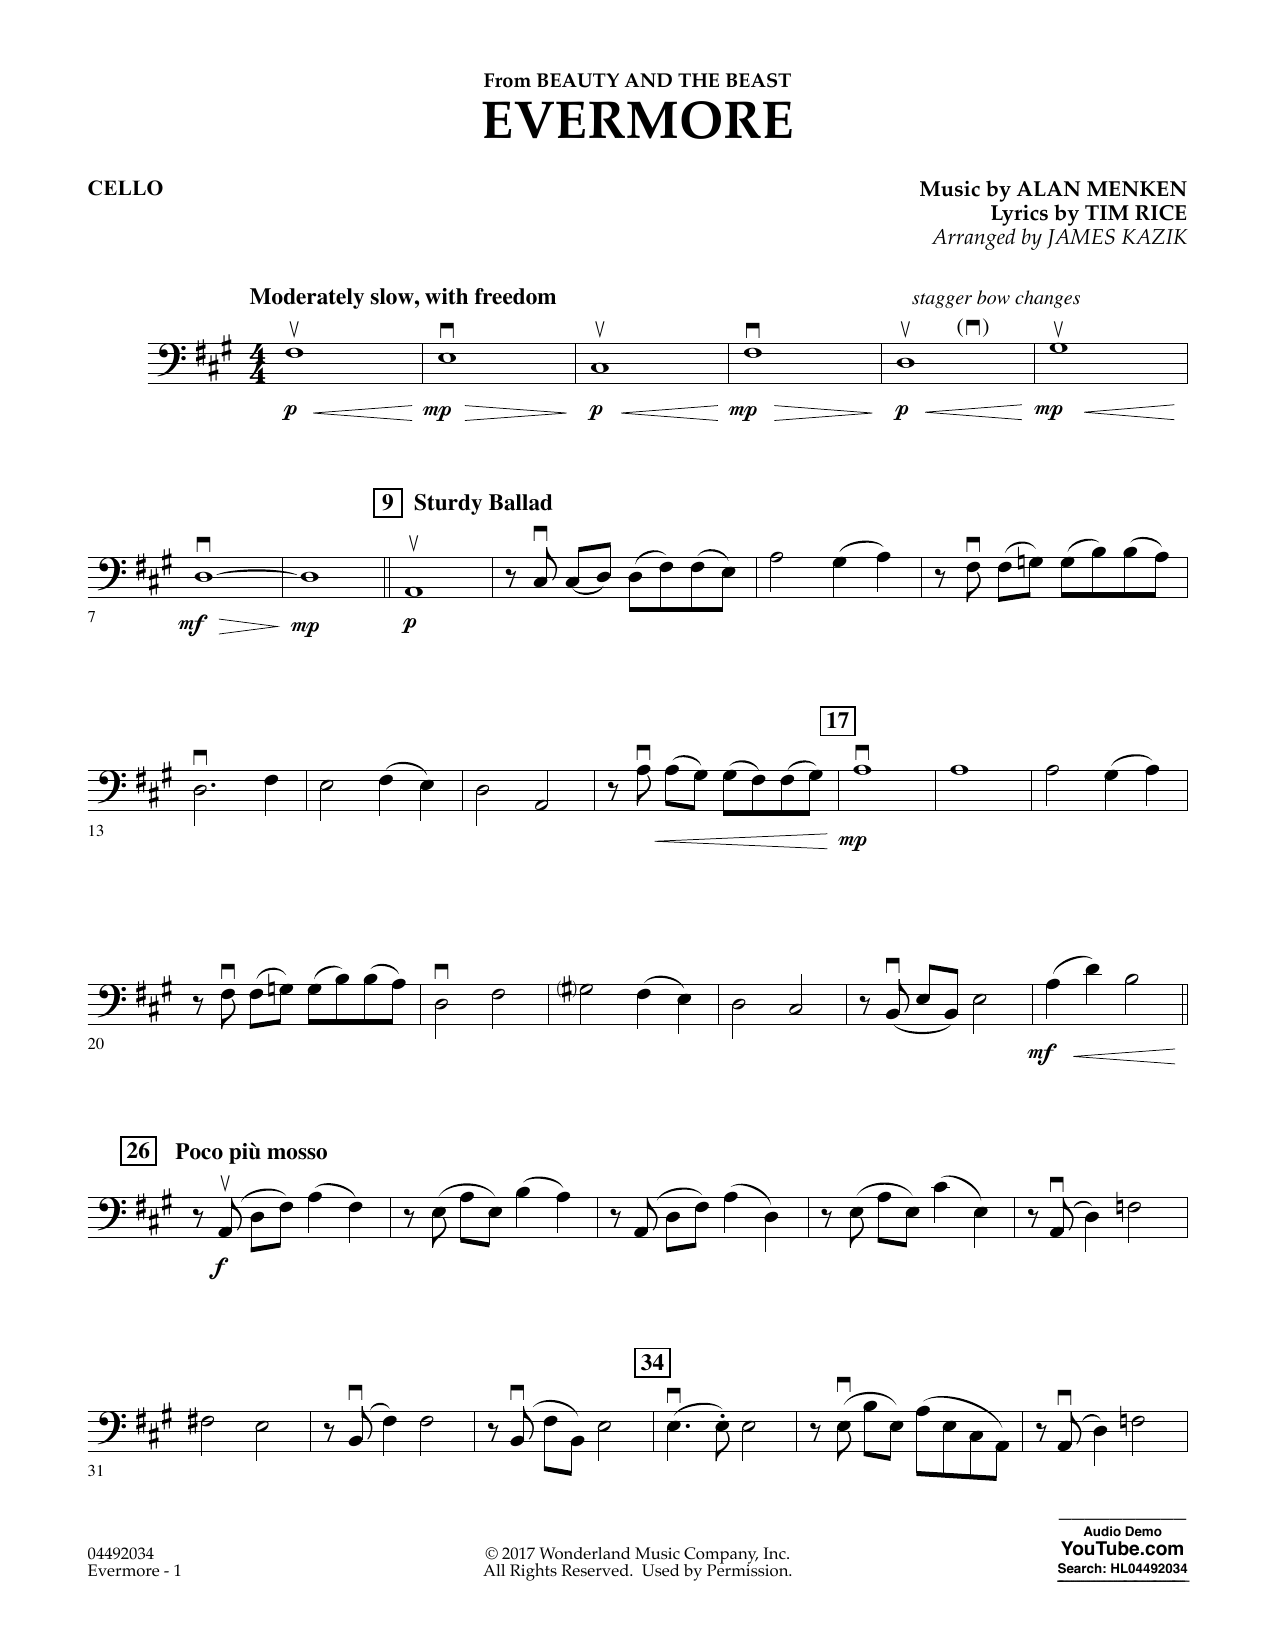 James Kazik Evermore (from Beauty and the Beast) - Cello sheet music notes and chords. Download Printable PDF.